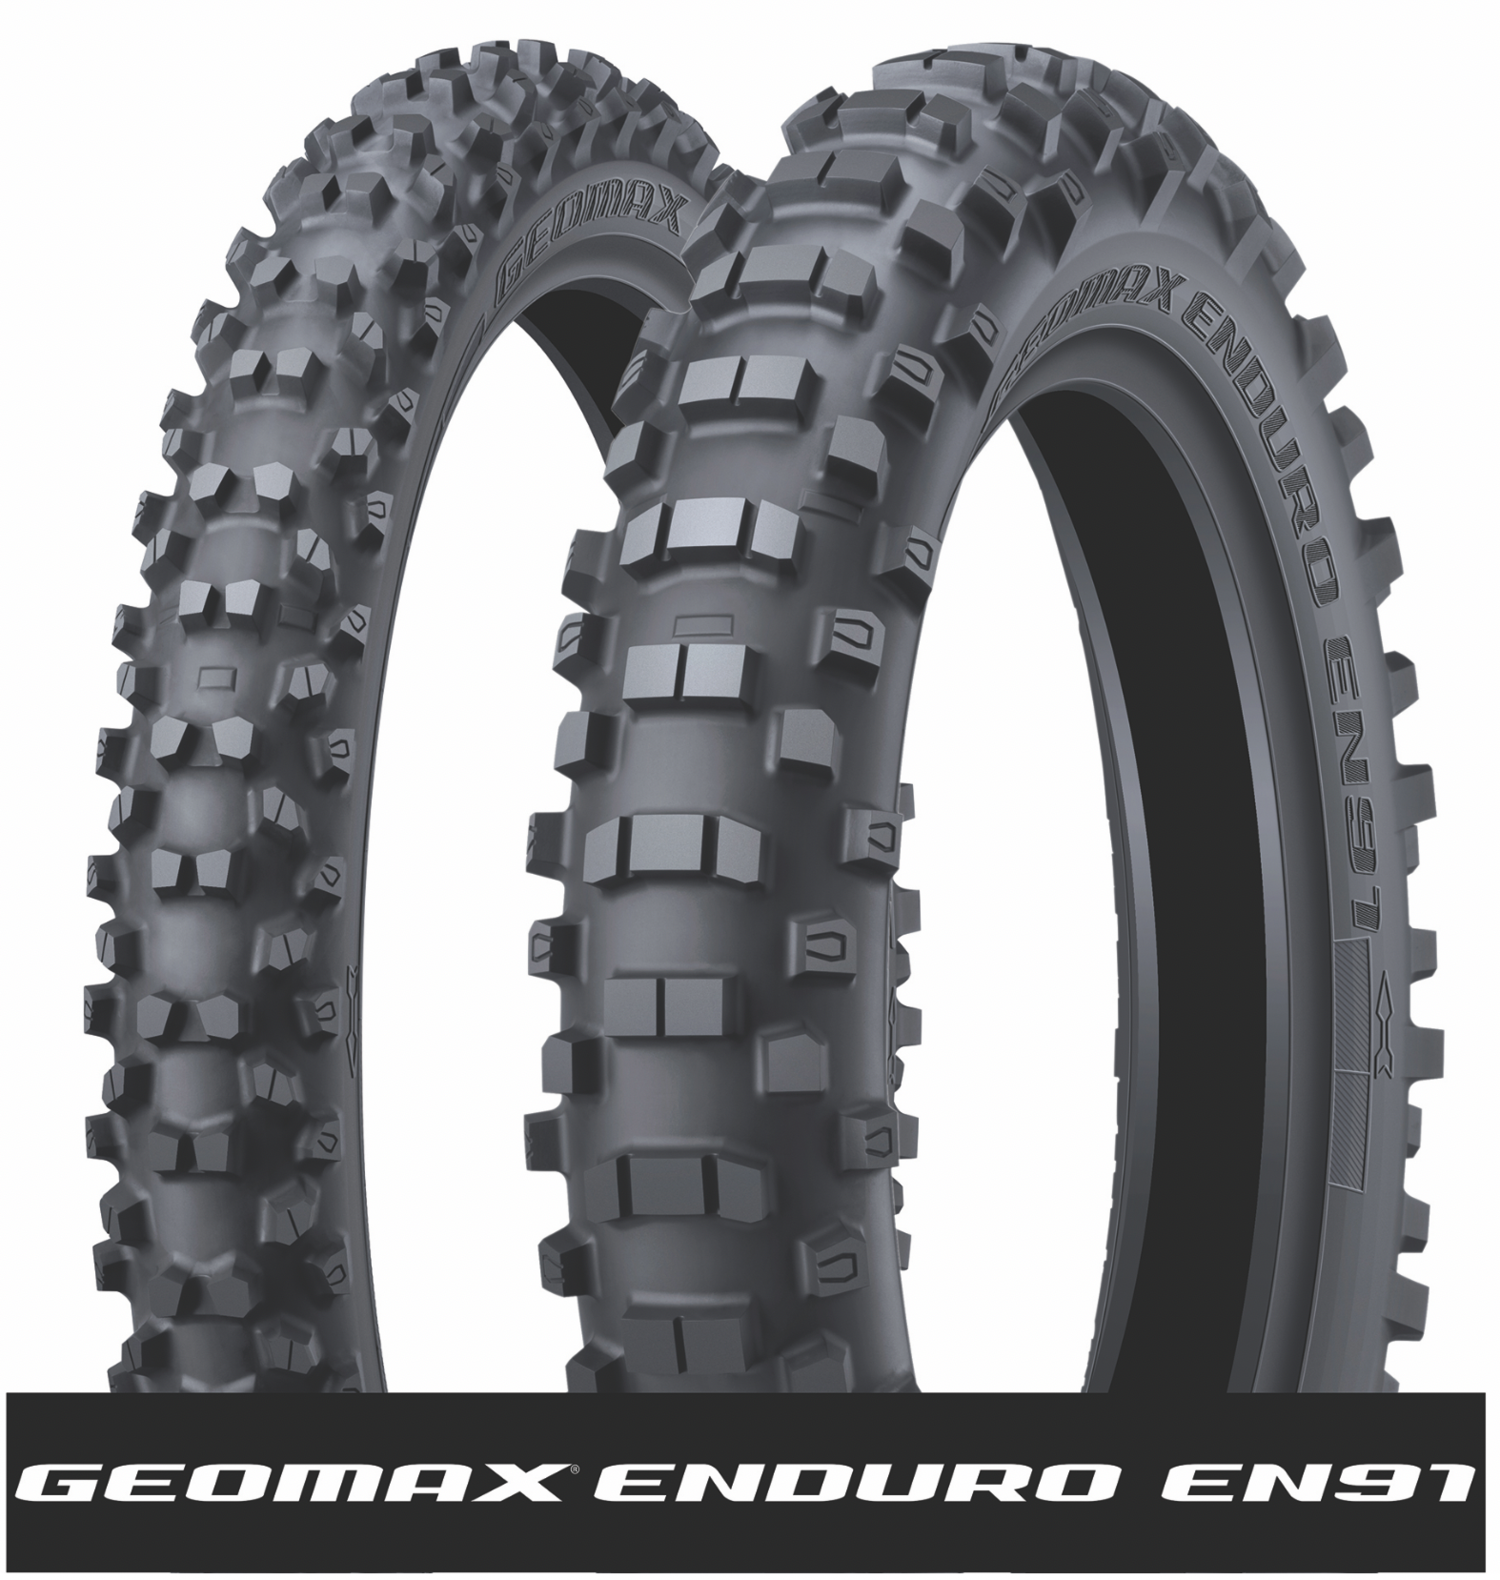 Upshiftdunlop Expands Enduro Adventure Line With New Geomax Adventure Dunlop Motorcycle Tires [ 1580 x 1500 Pixel ]